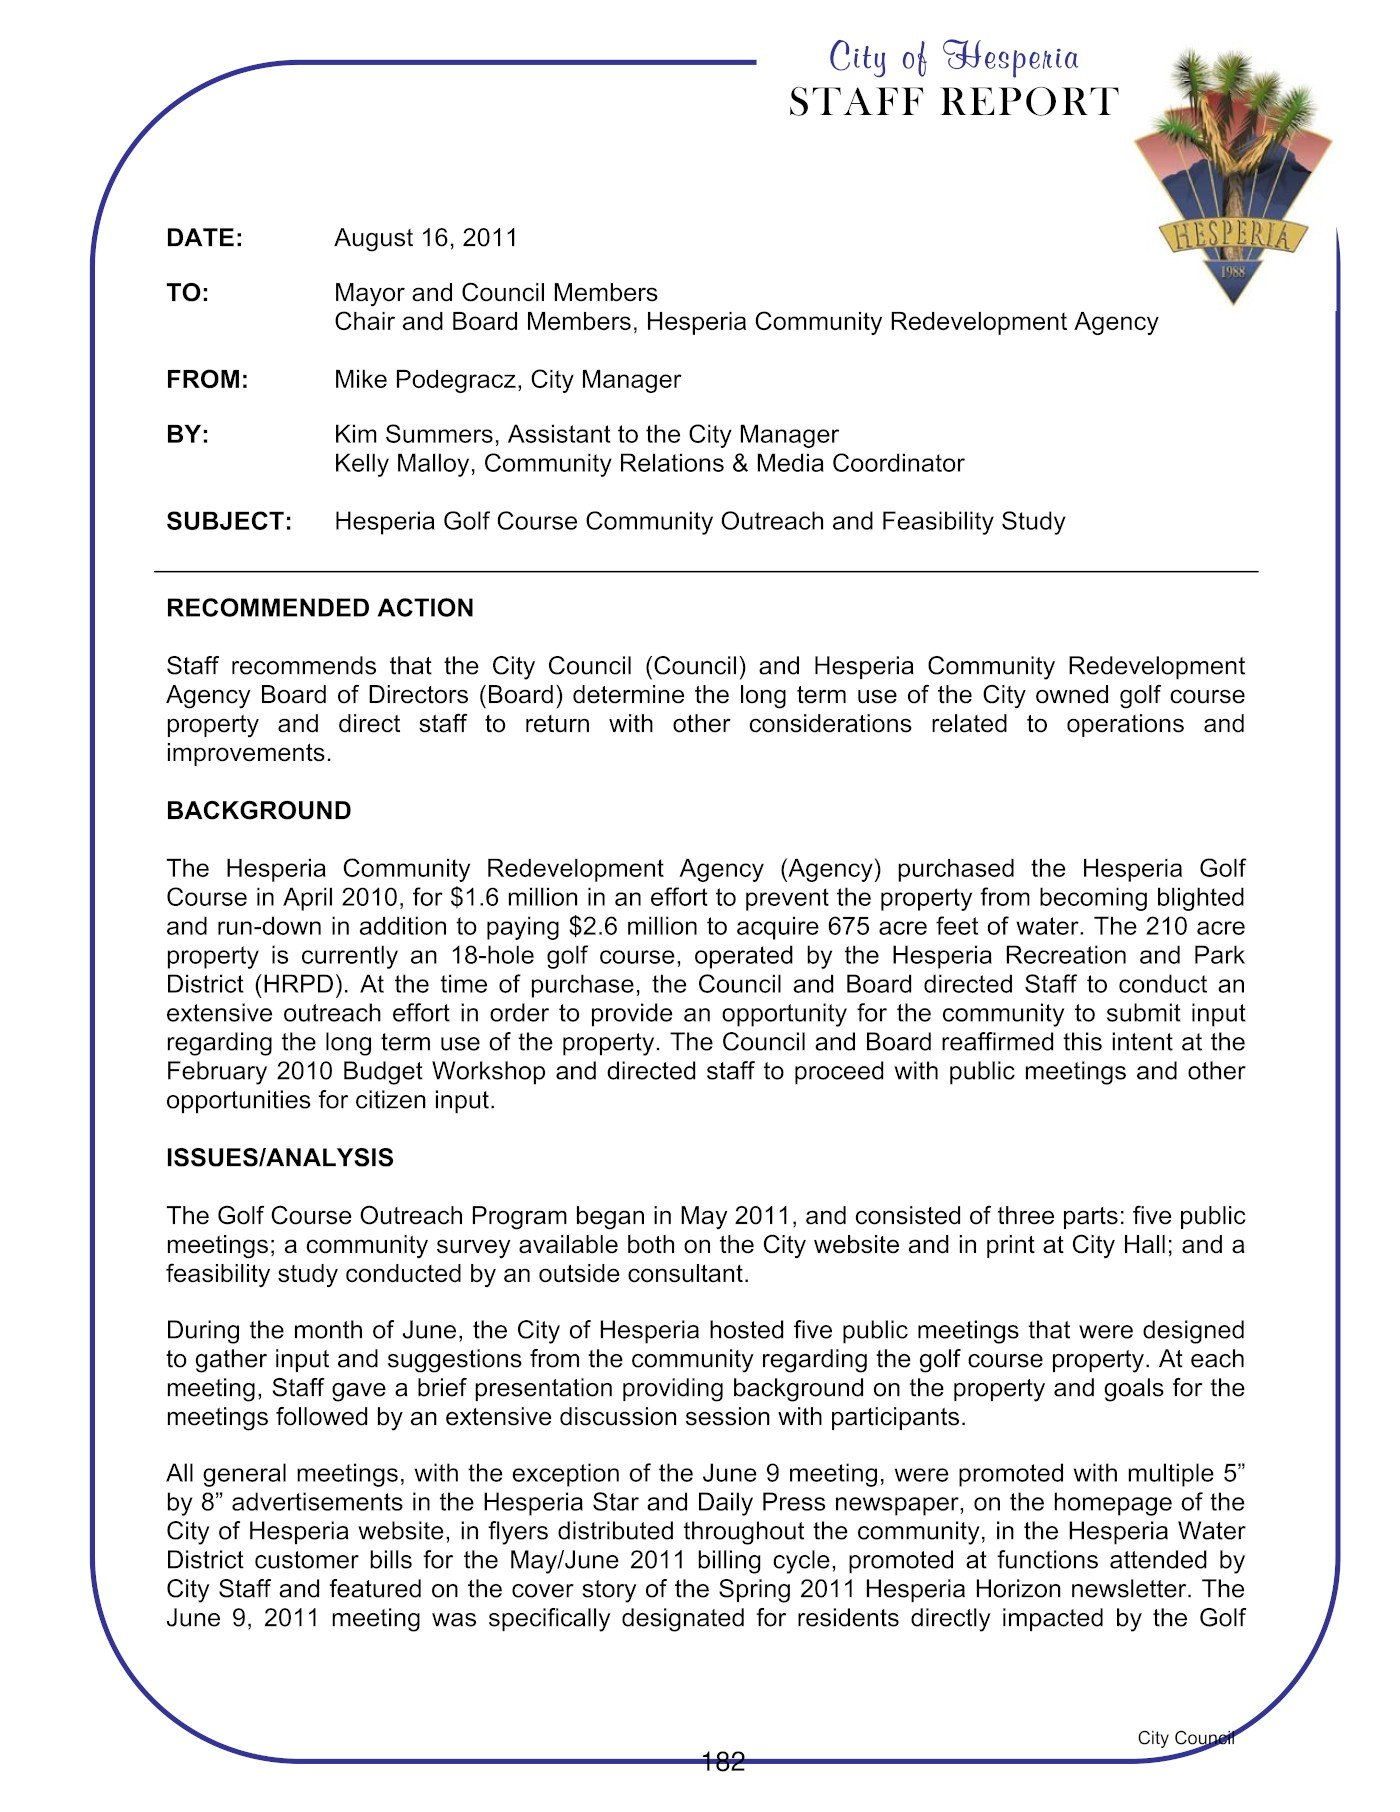 Hesperia Golf 8-16-2011 Council Meeting Staff Report 1 of 4